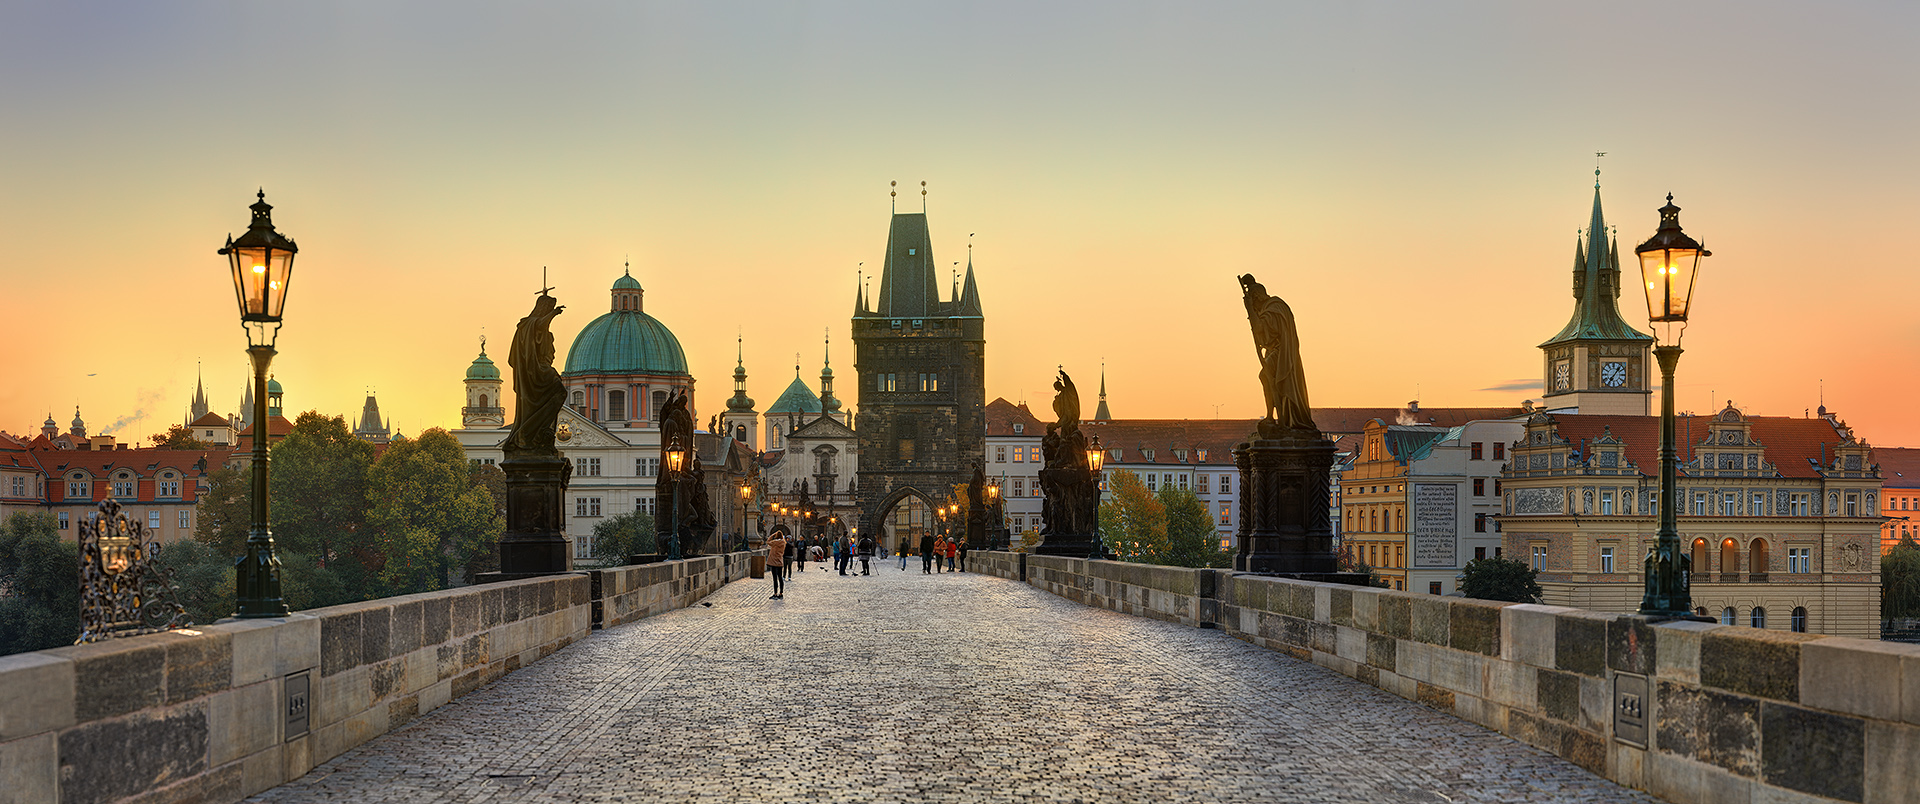 Catch Charles Bridge at sunset - it's seen a fair few in its 600 years